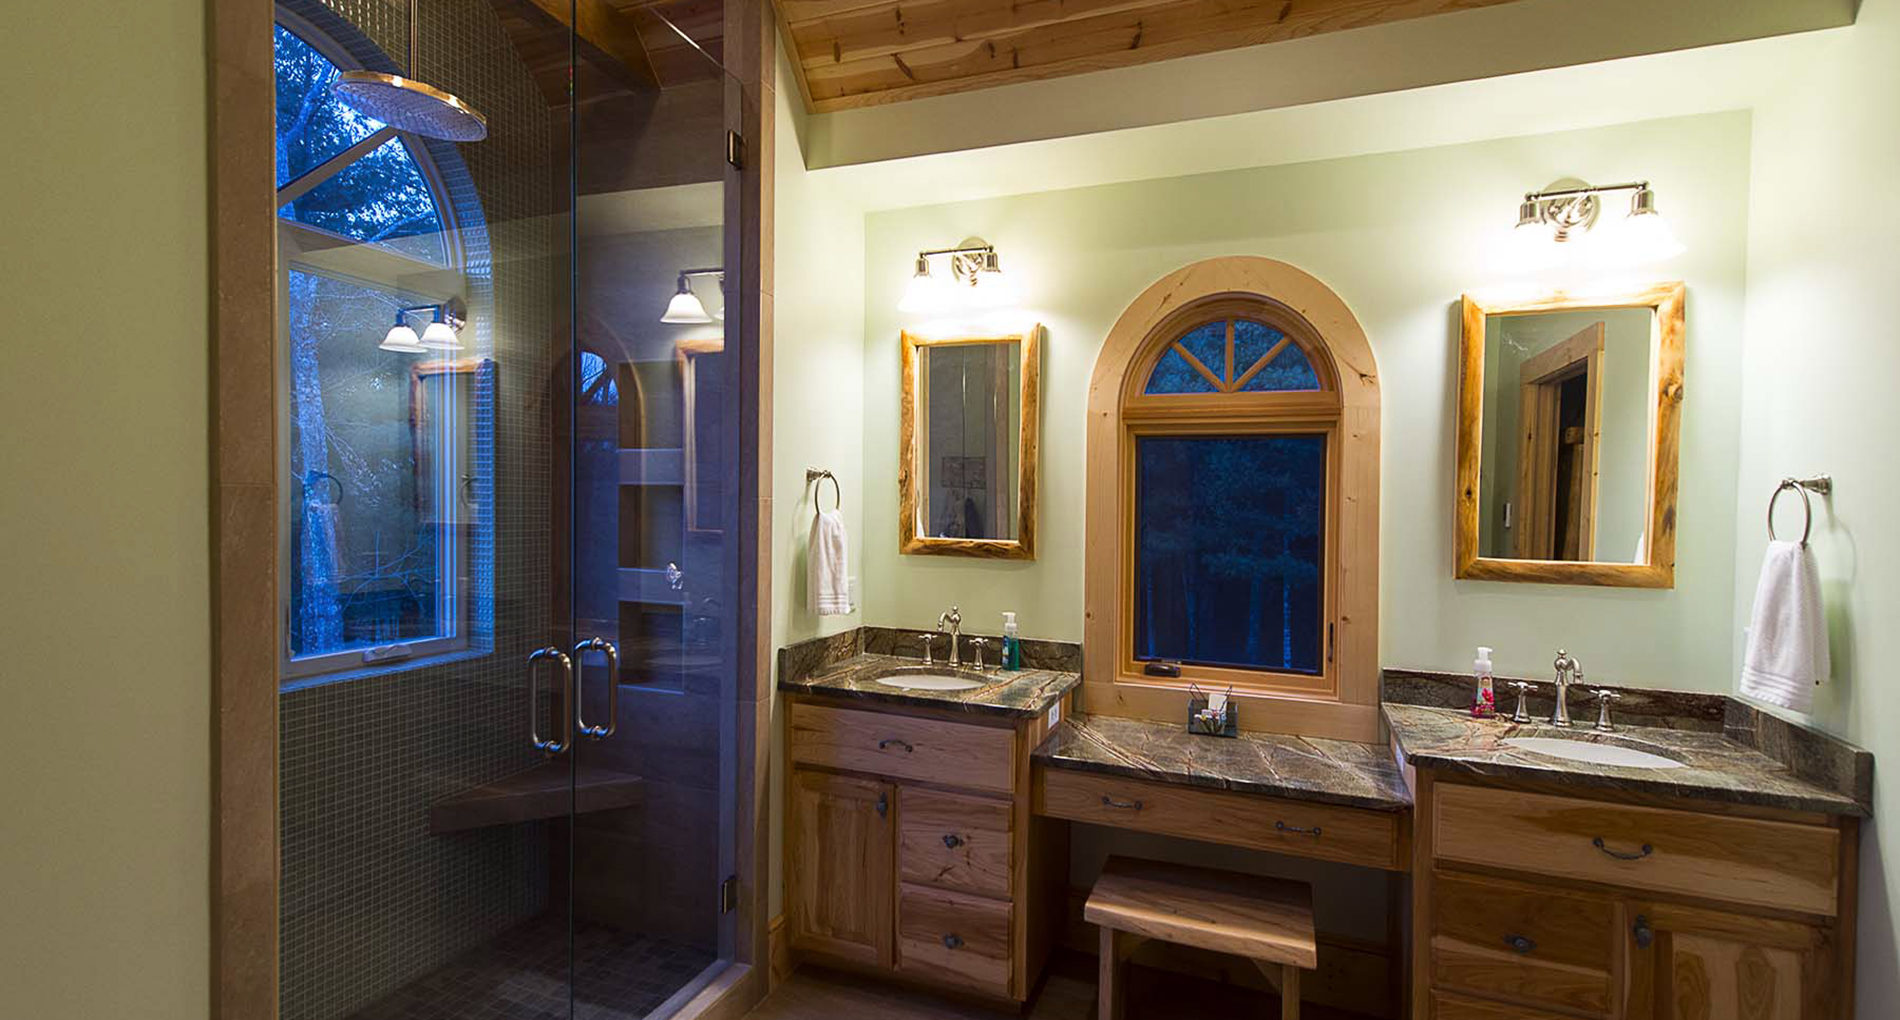 Bathroom Remodel Highcountry Luskresidence Slider